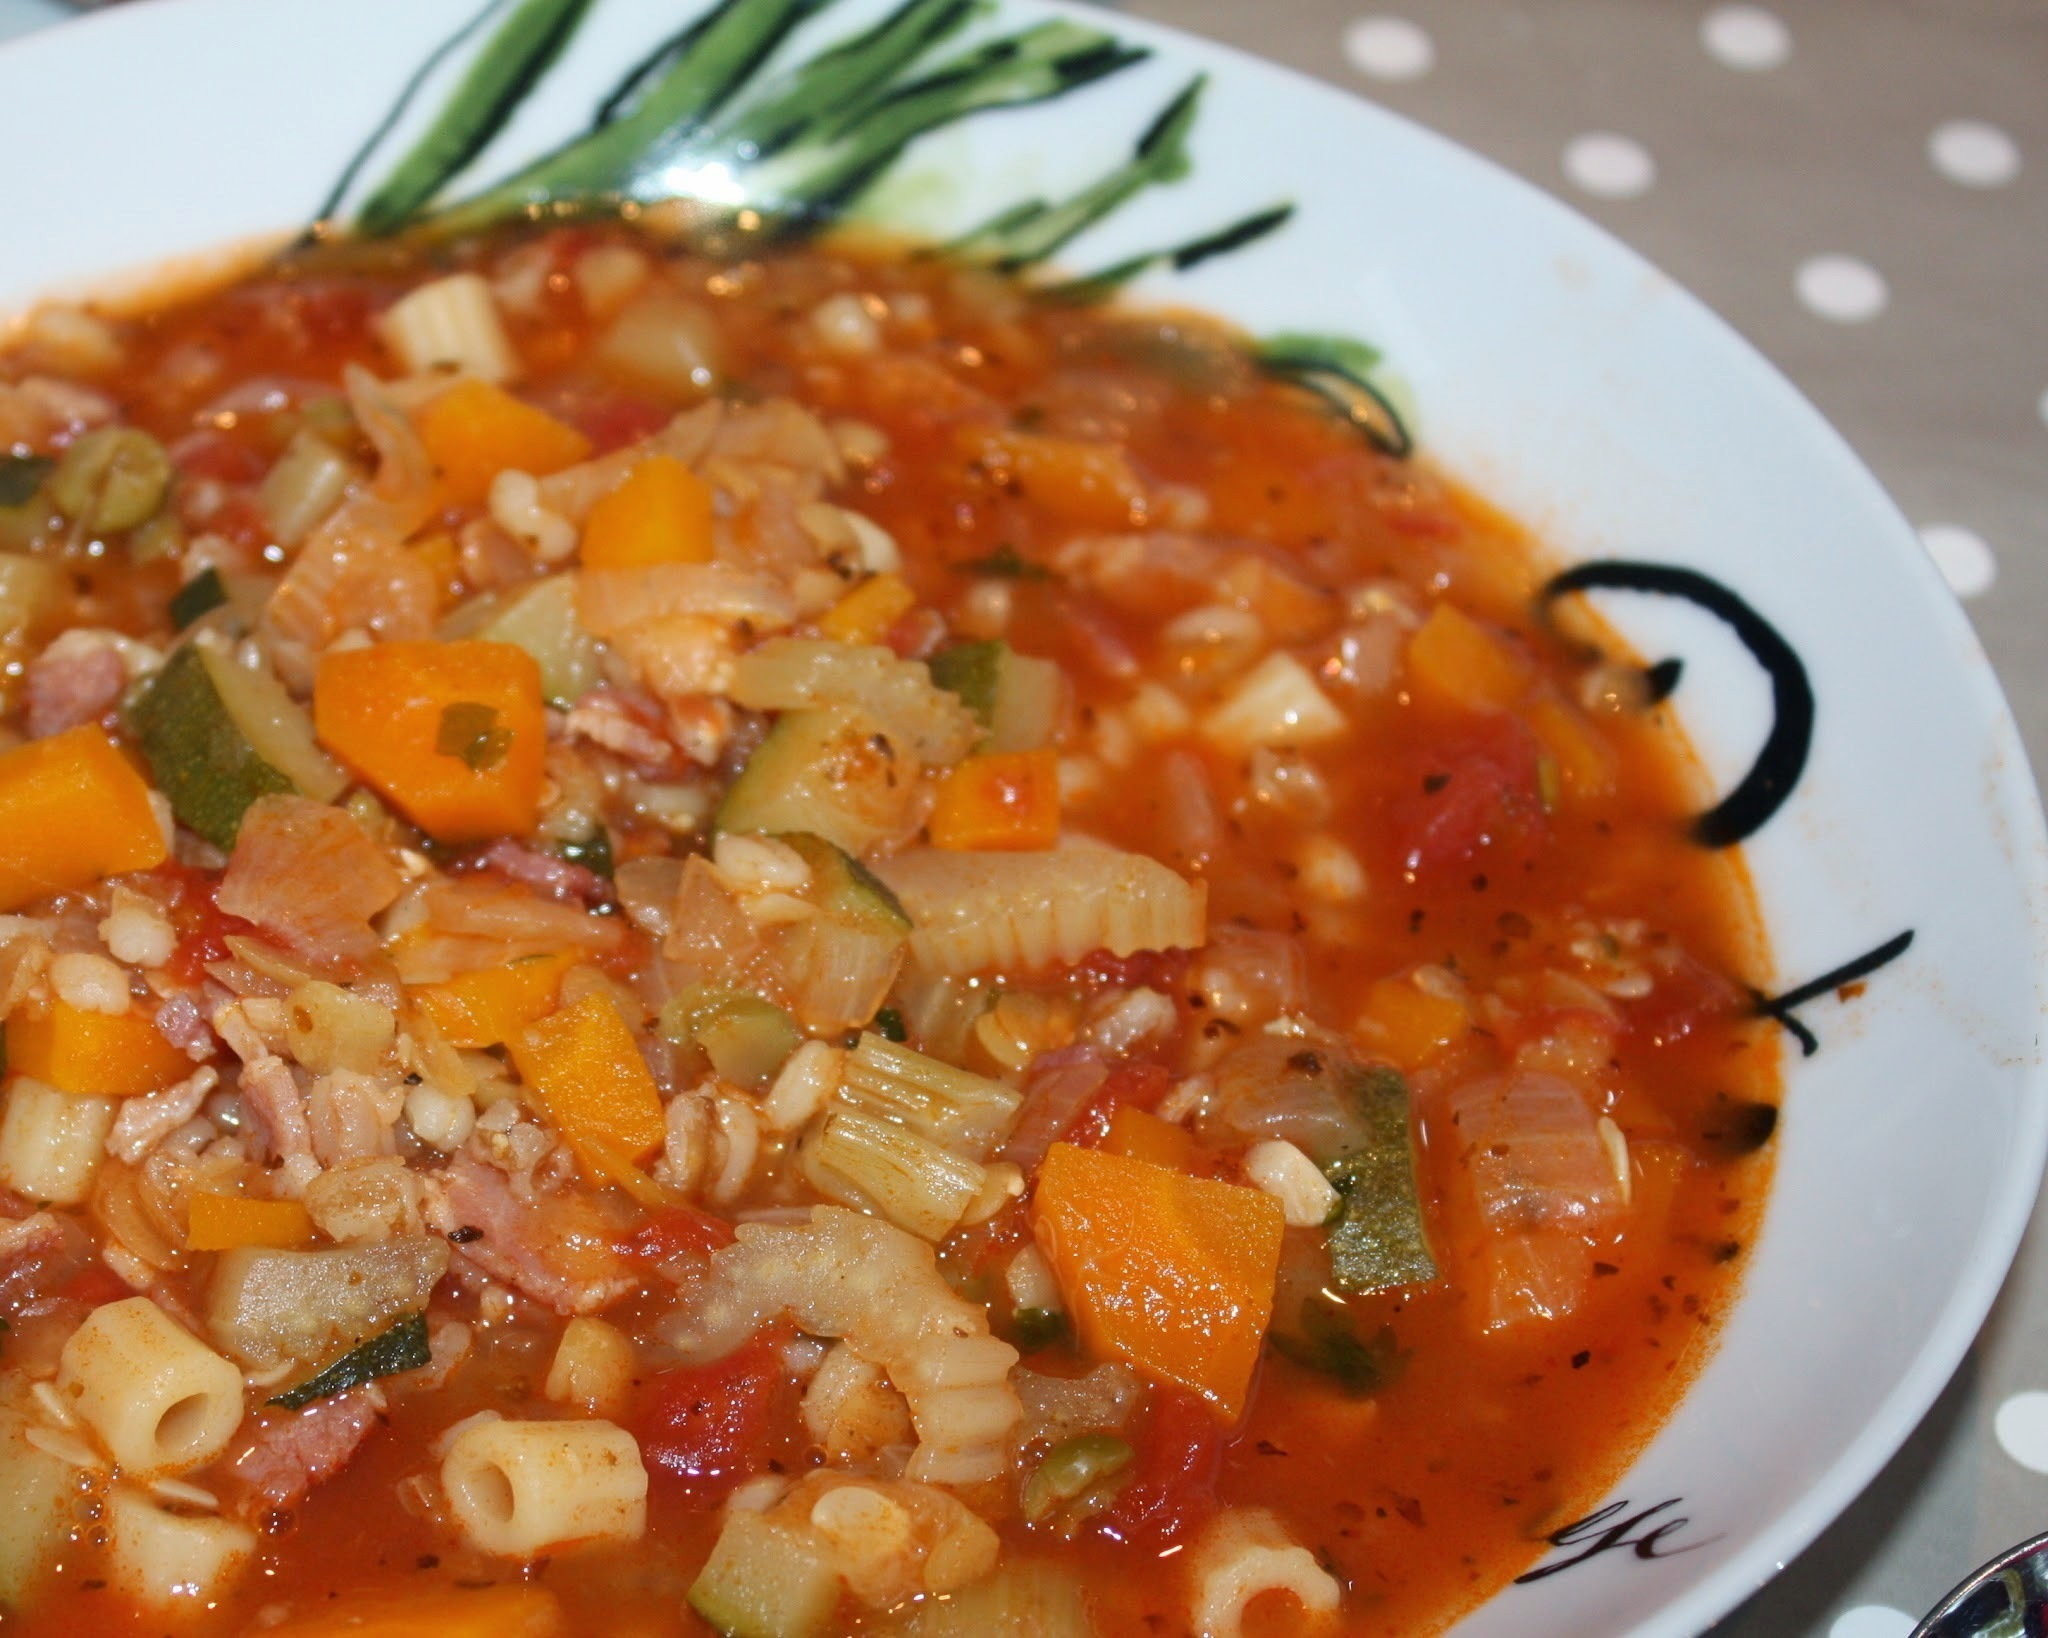 Minestrone Soup Recipe - Using Dry Minestrone Mix